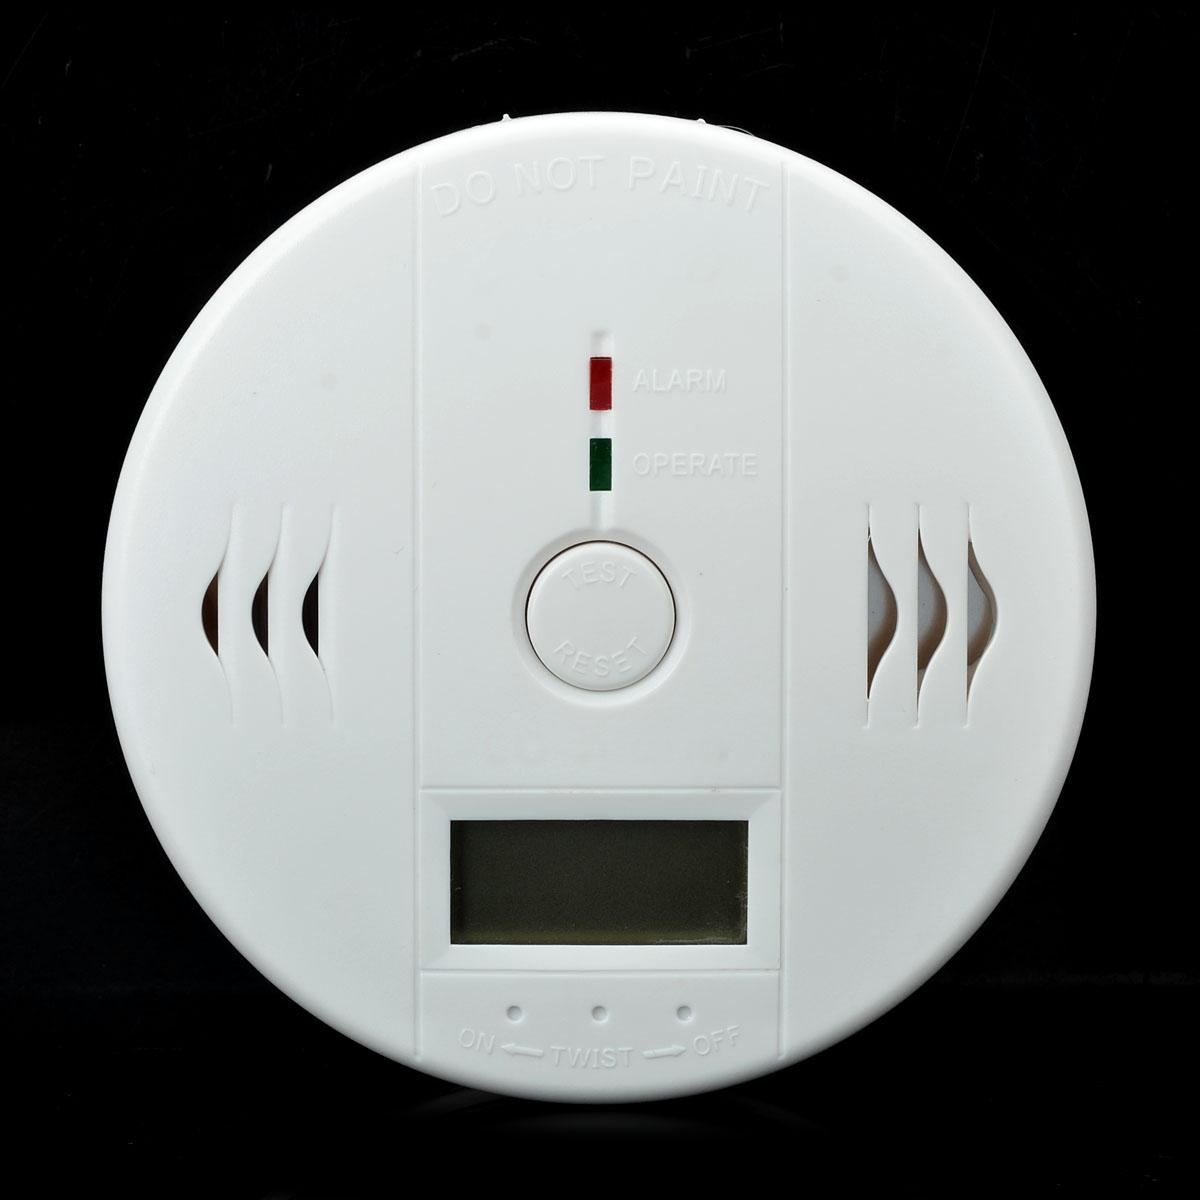 Buy Hot Shaperoemfc Alarm Systems Accessories At Best Prices Shadow Sensor Security Carbon Monoxide With Led Indicator Light White